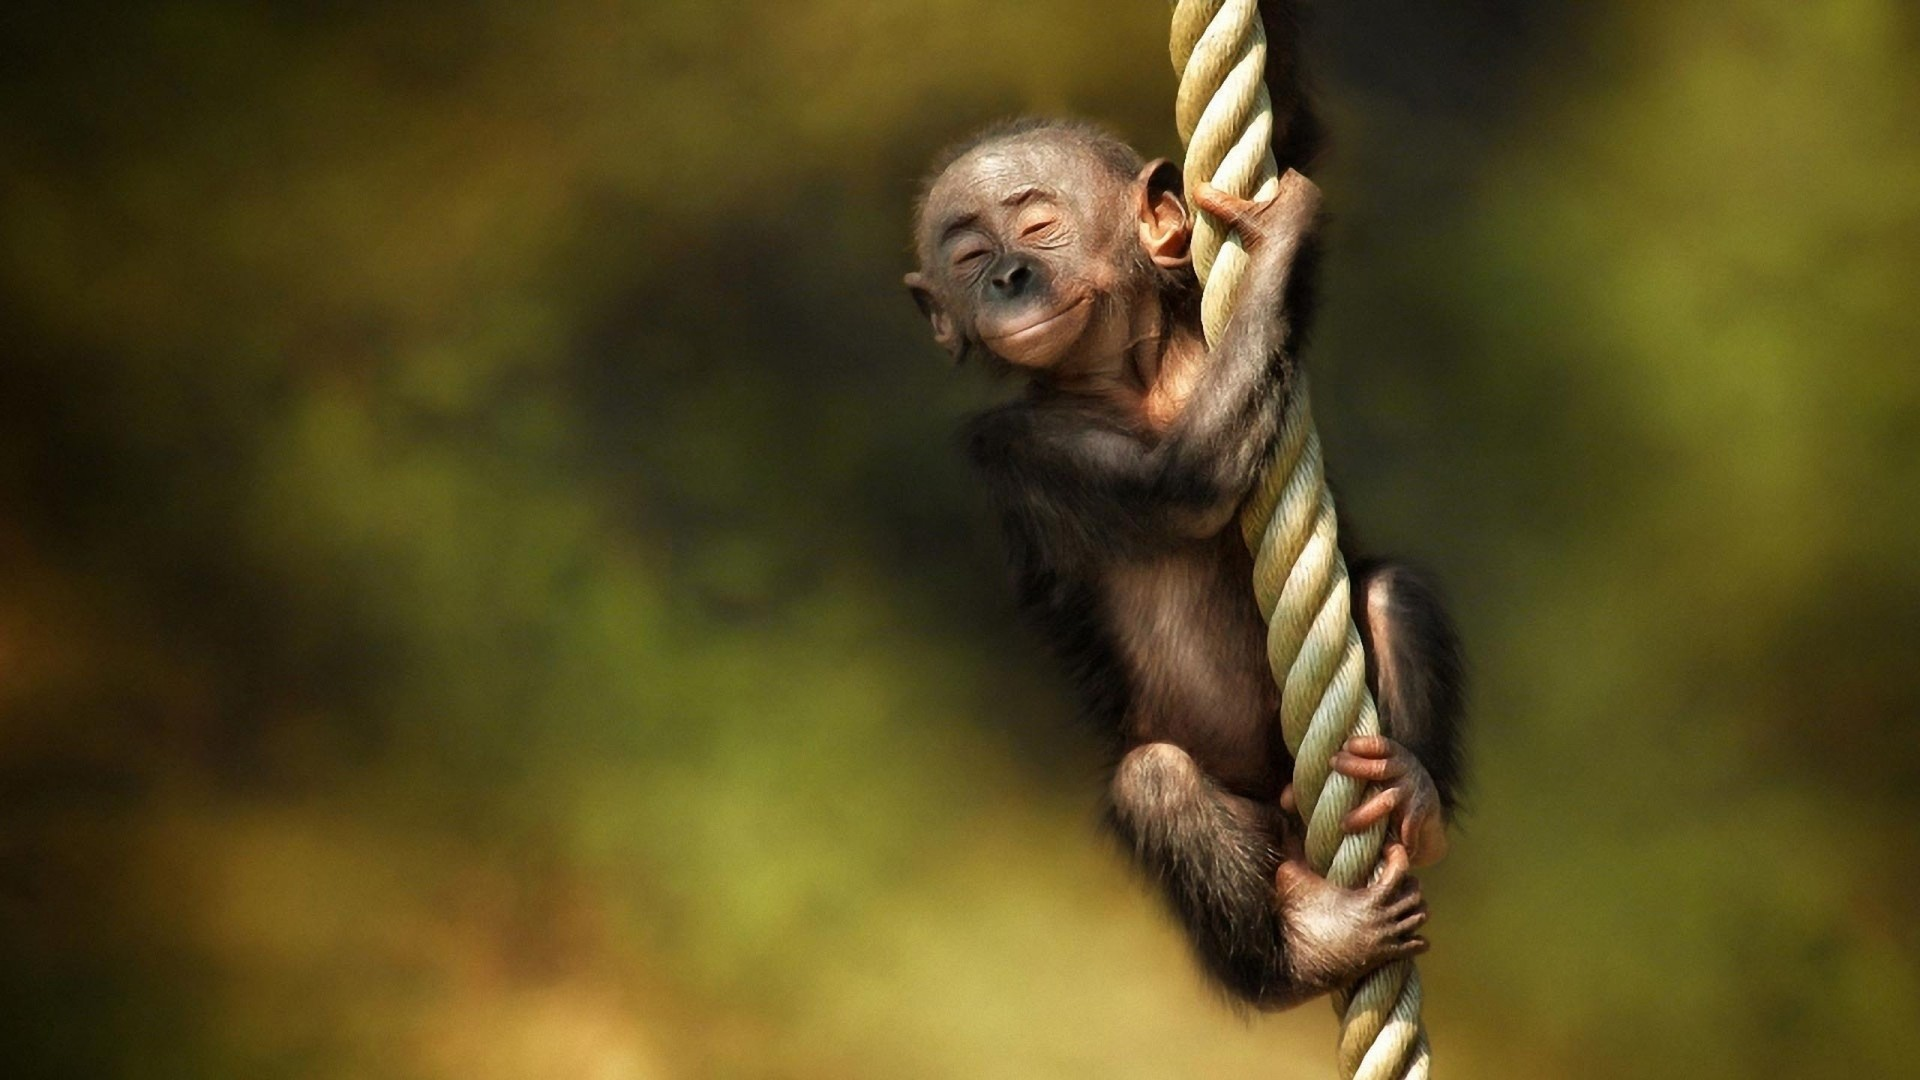 1920x1080 Full HD p Monkey Wallpapers HD Desktop Backgrounds x 1920×1080